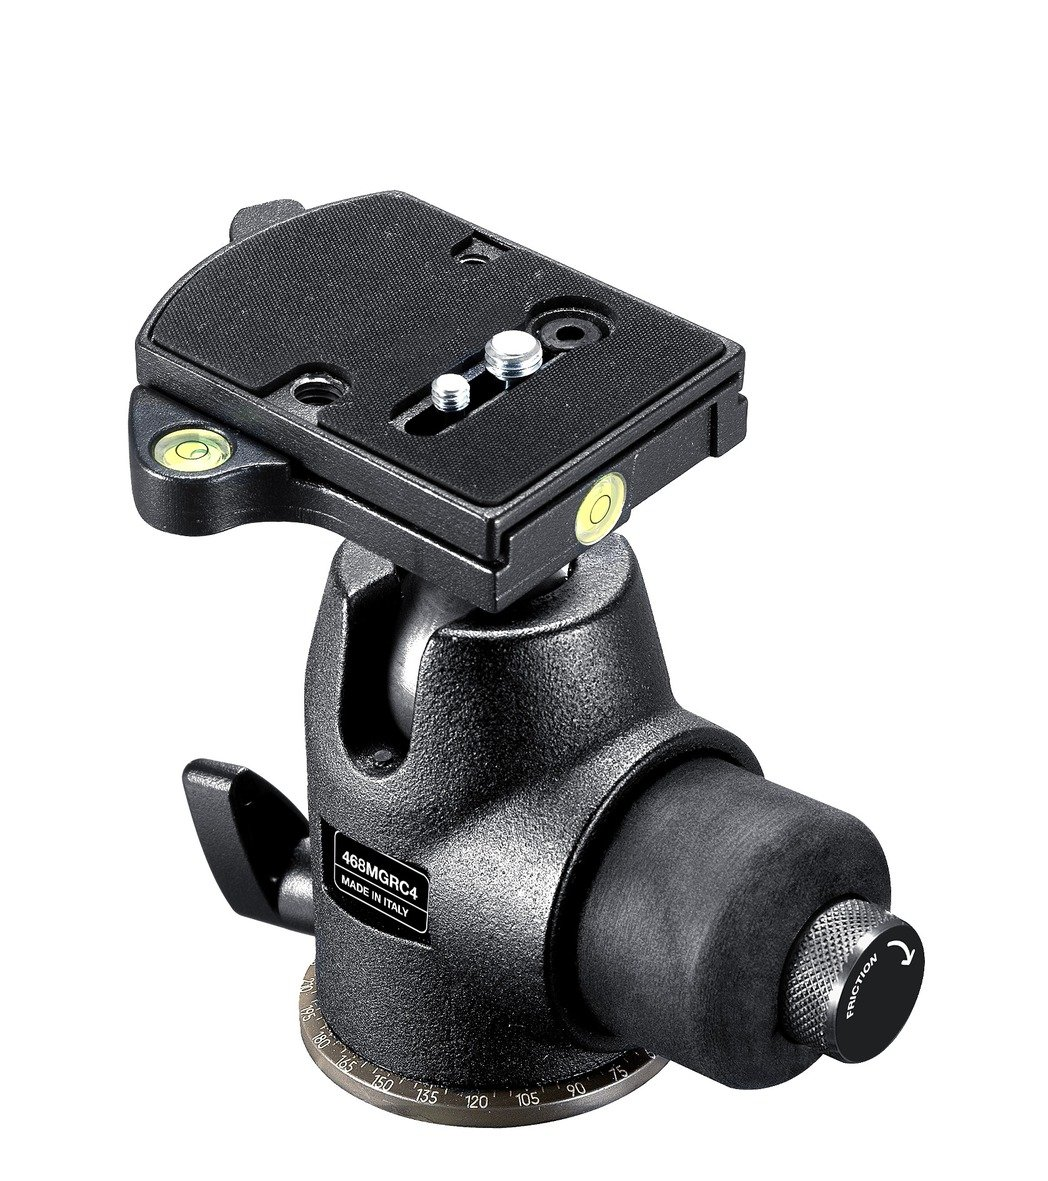 Manfrotto 468MGRC4 Hydrostatic Ball Head with RC4 Rapid...